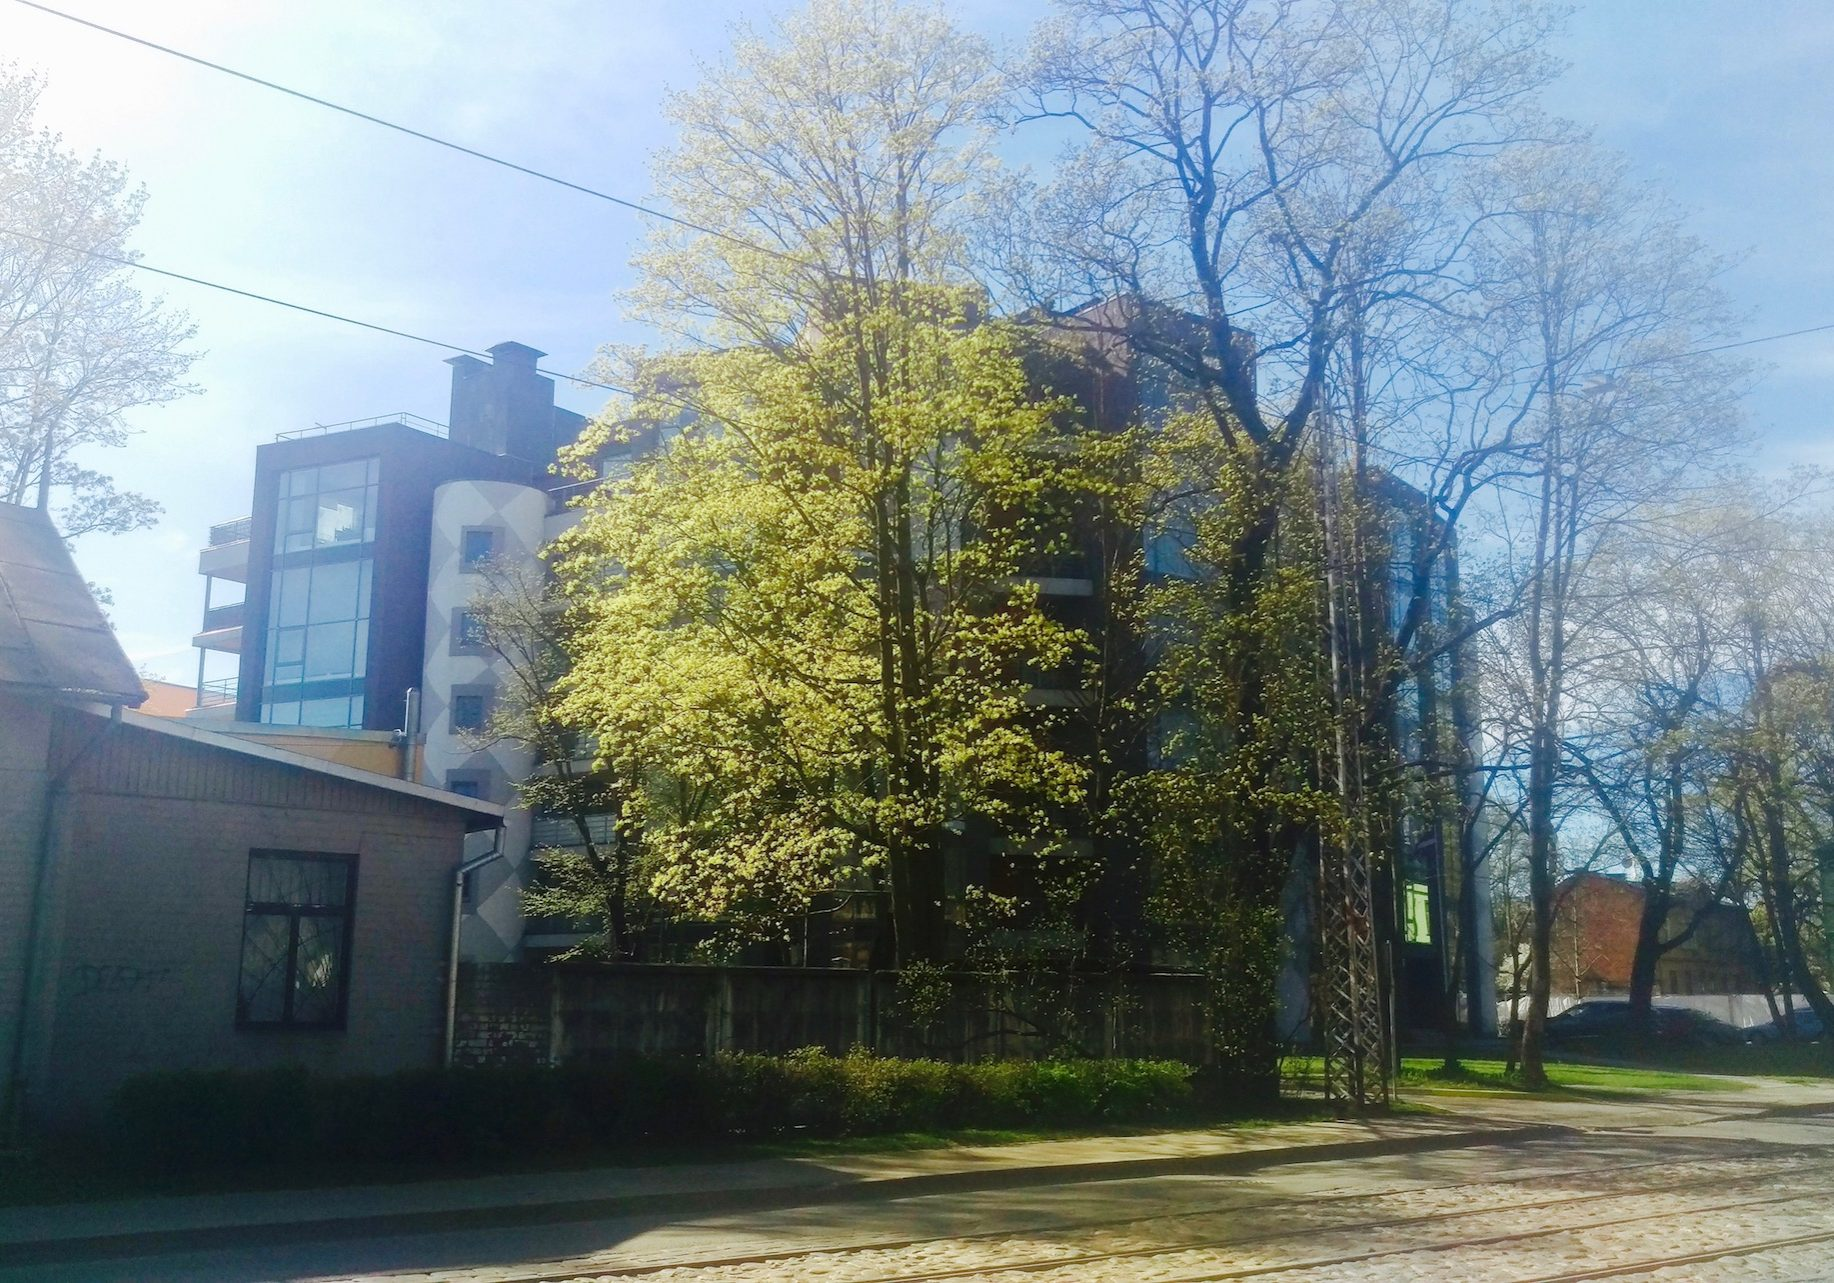 Similar as in other neighborhoods of Riga, several new constructions are developing in Dzirciems